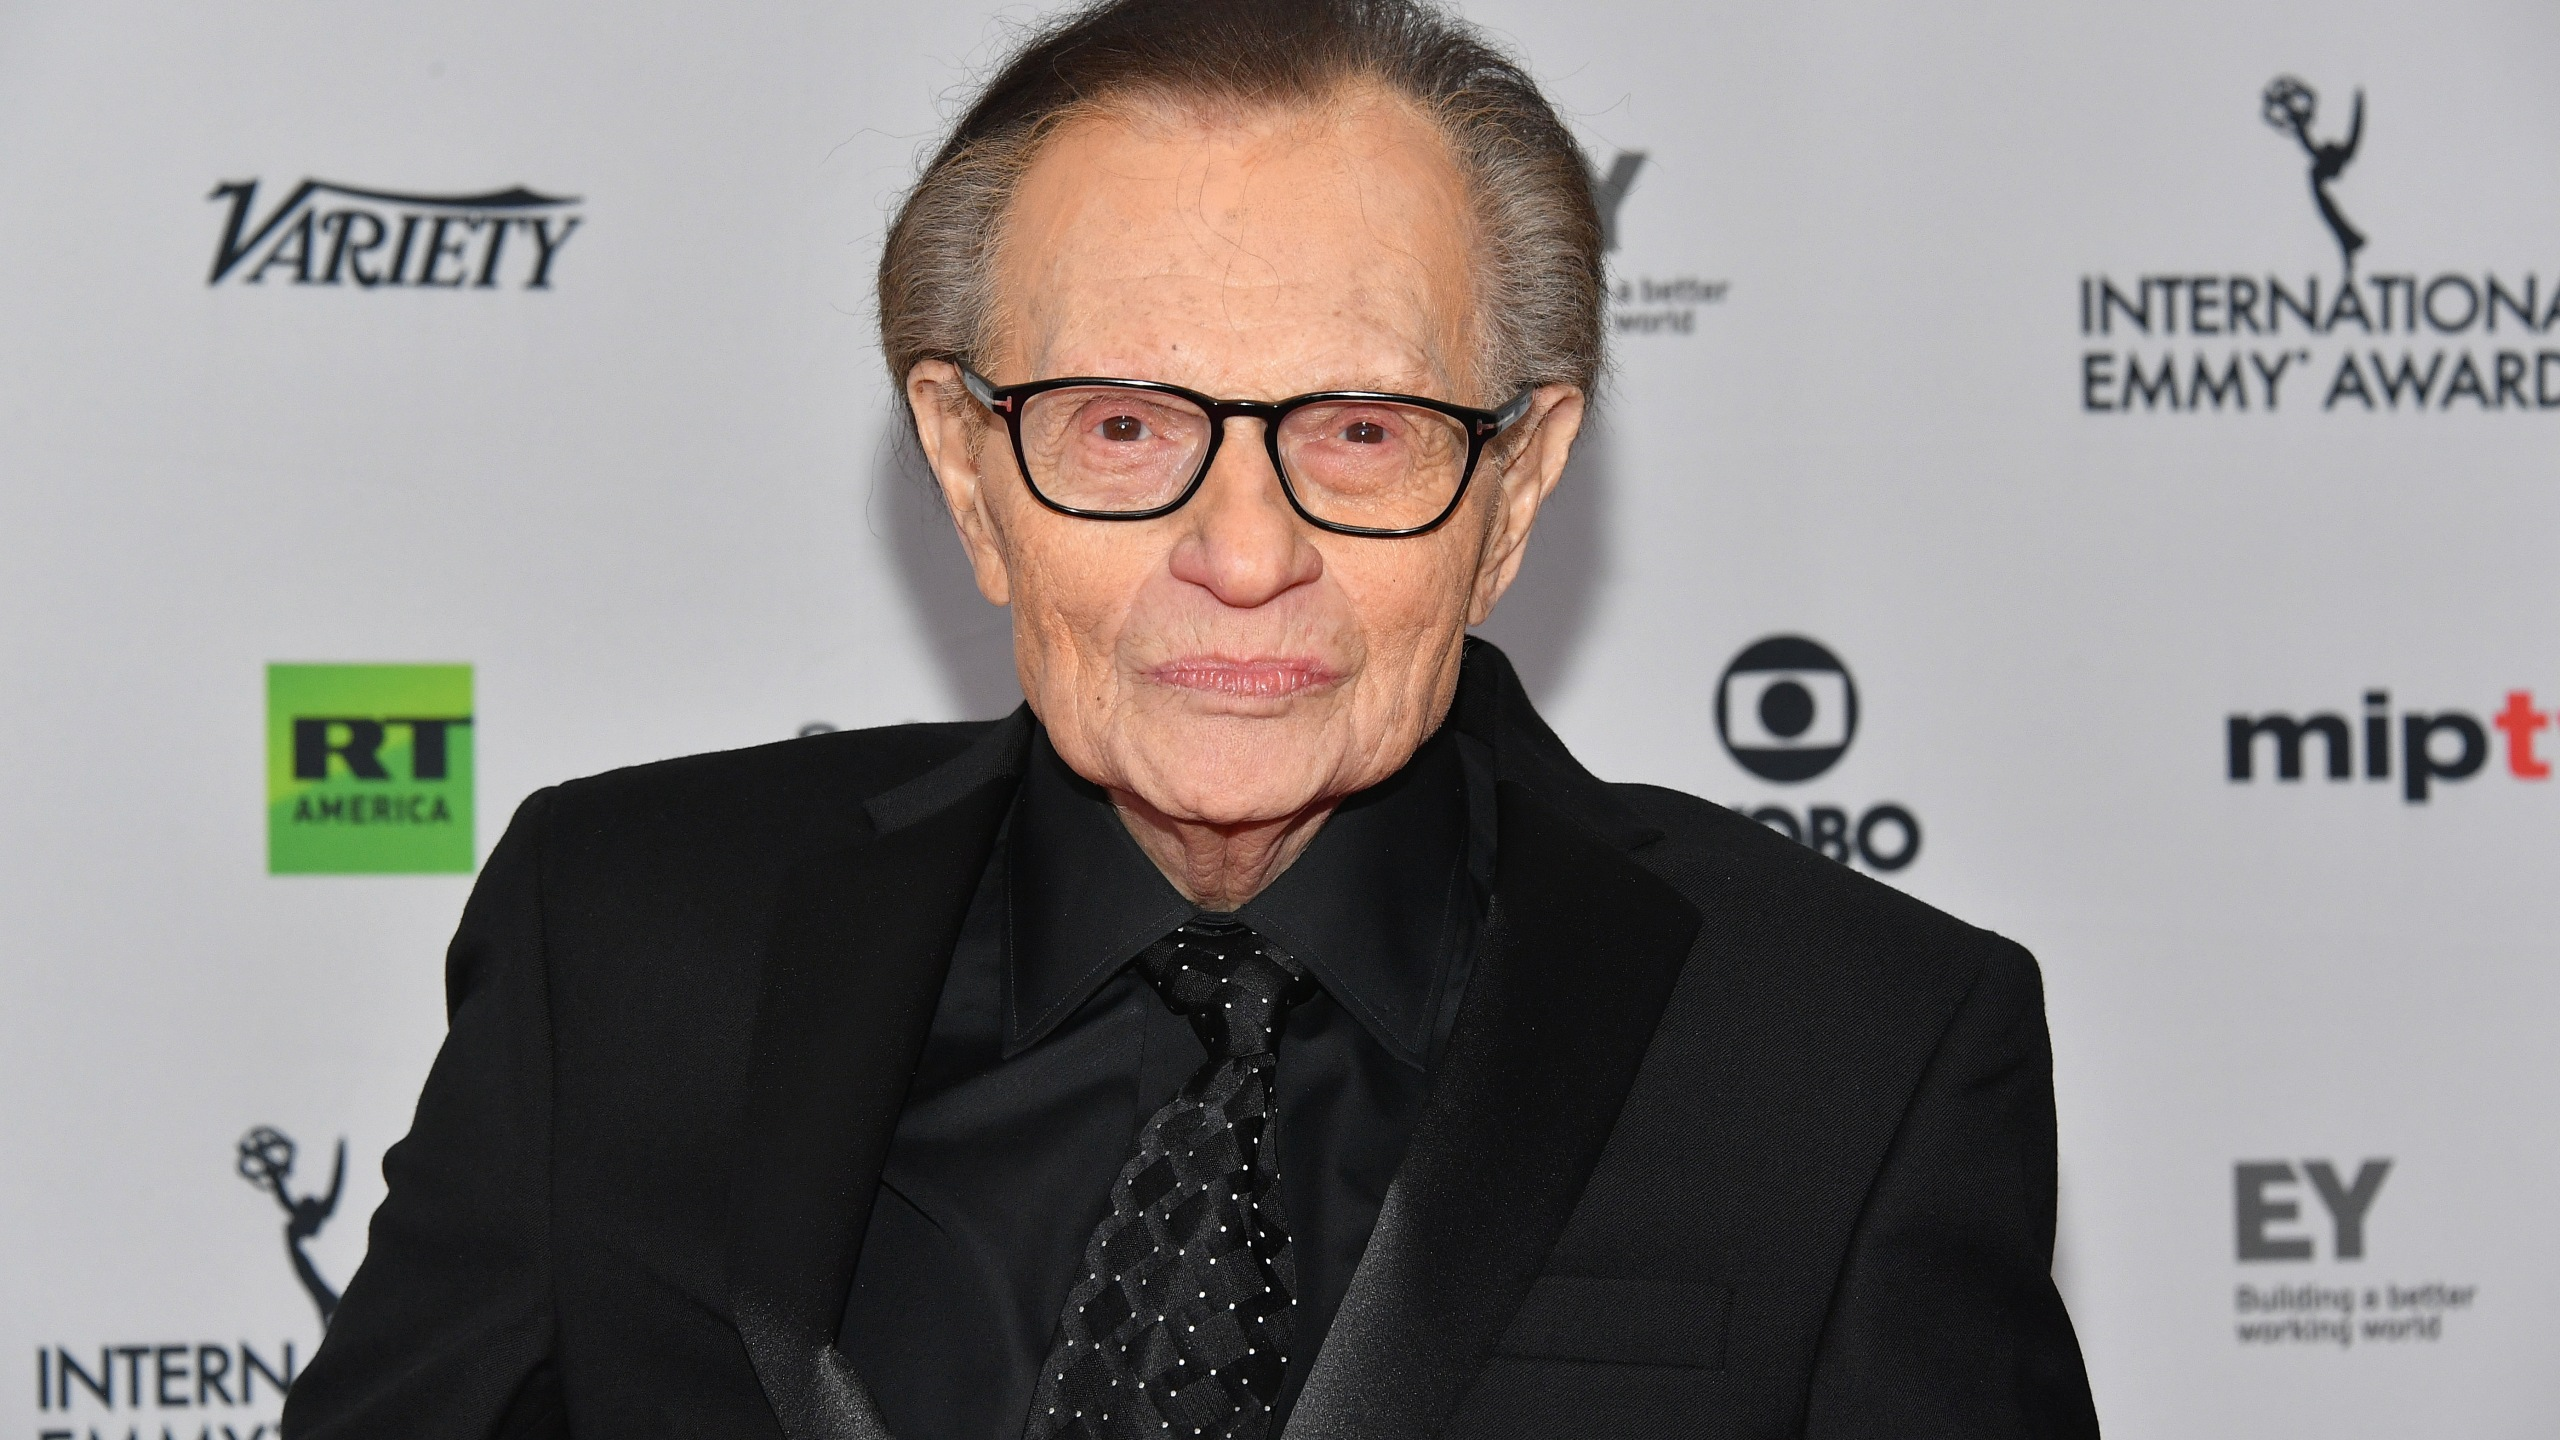 Larry King attends the 45th International Emmy Awards at New York Hilton on Nov. 20, 2017 in New York City. (Credit: Dia Dipasupil/Getty Images)